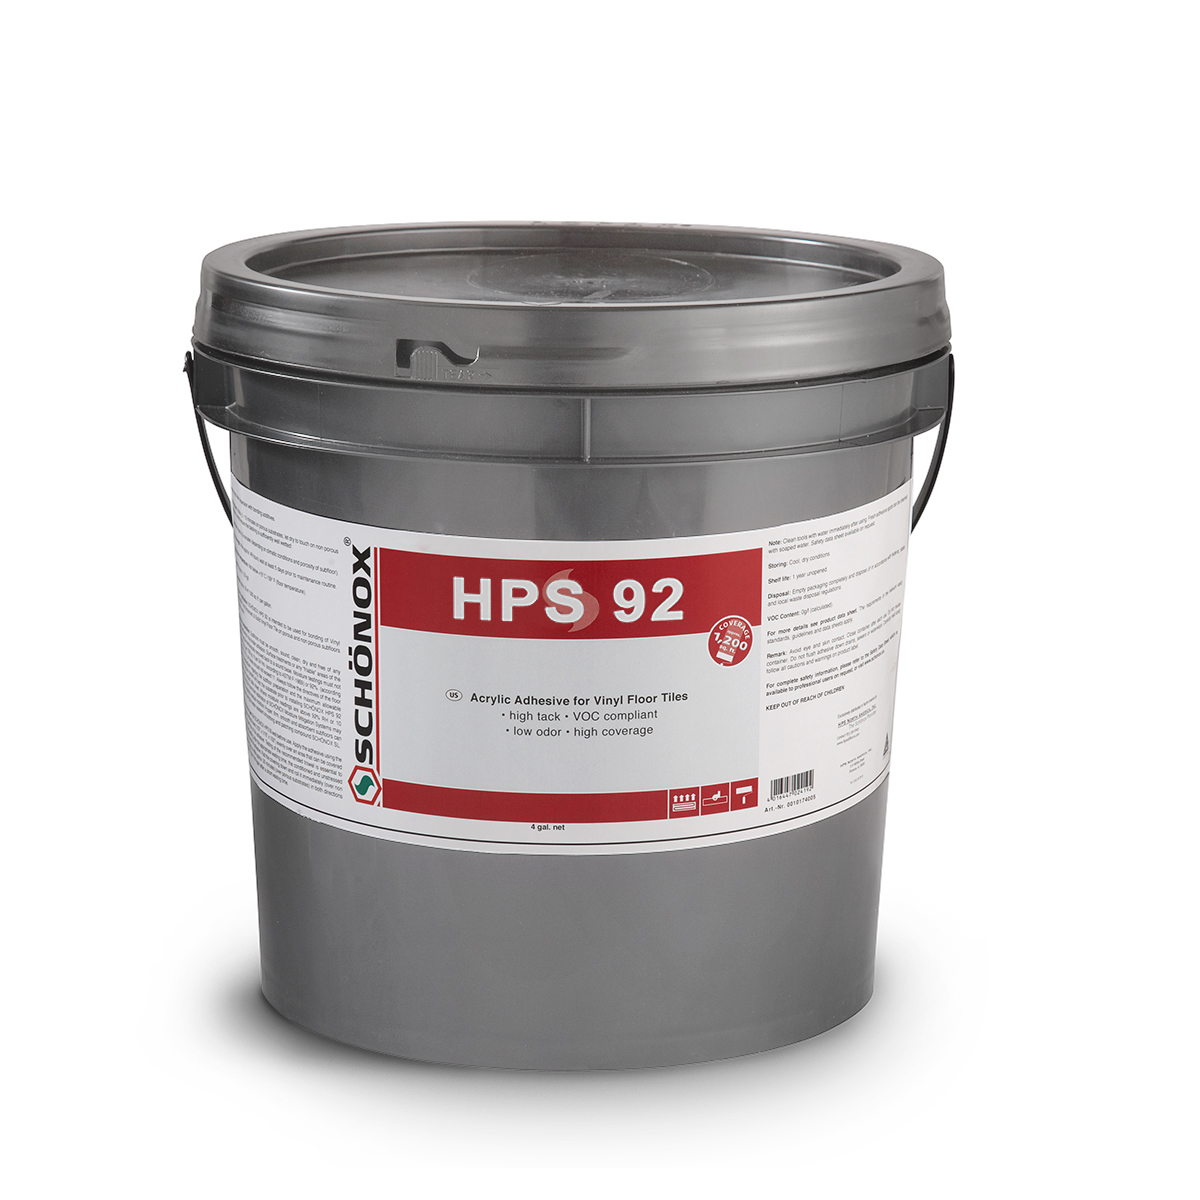 Image of HPS 92 Product Bucket